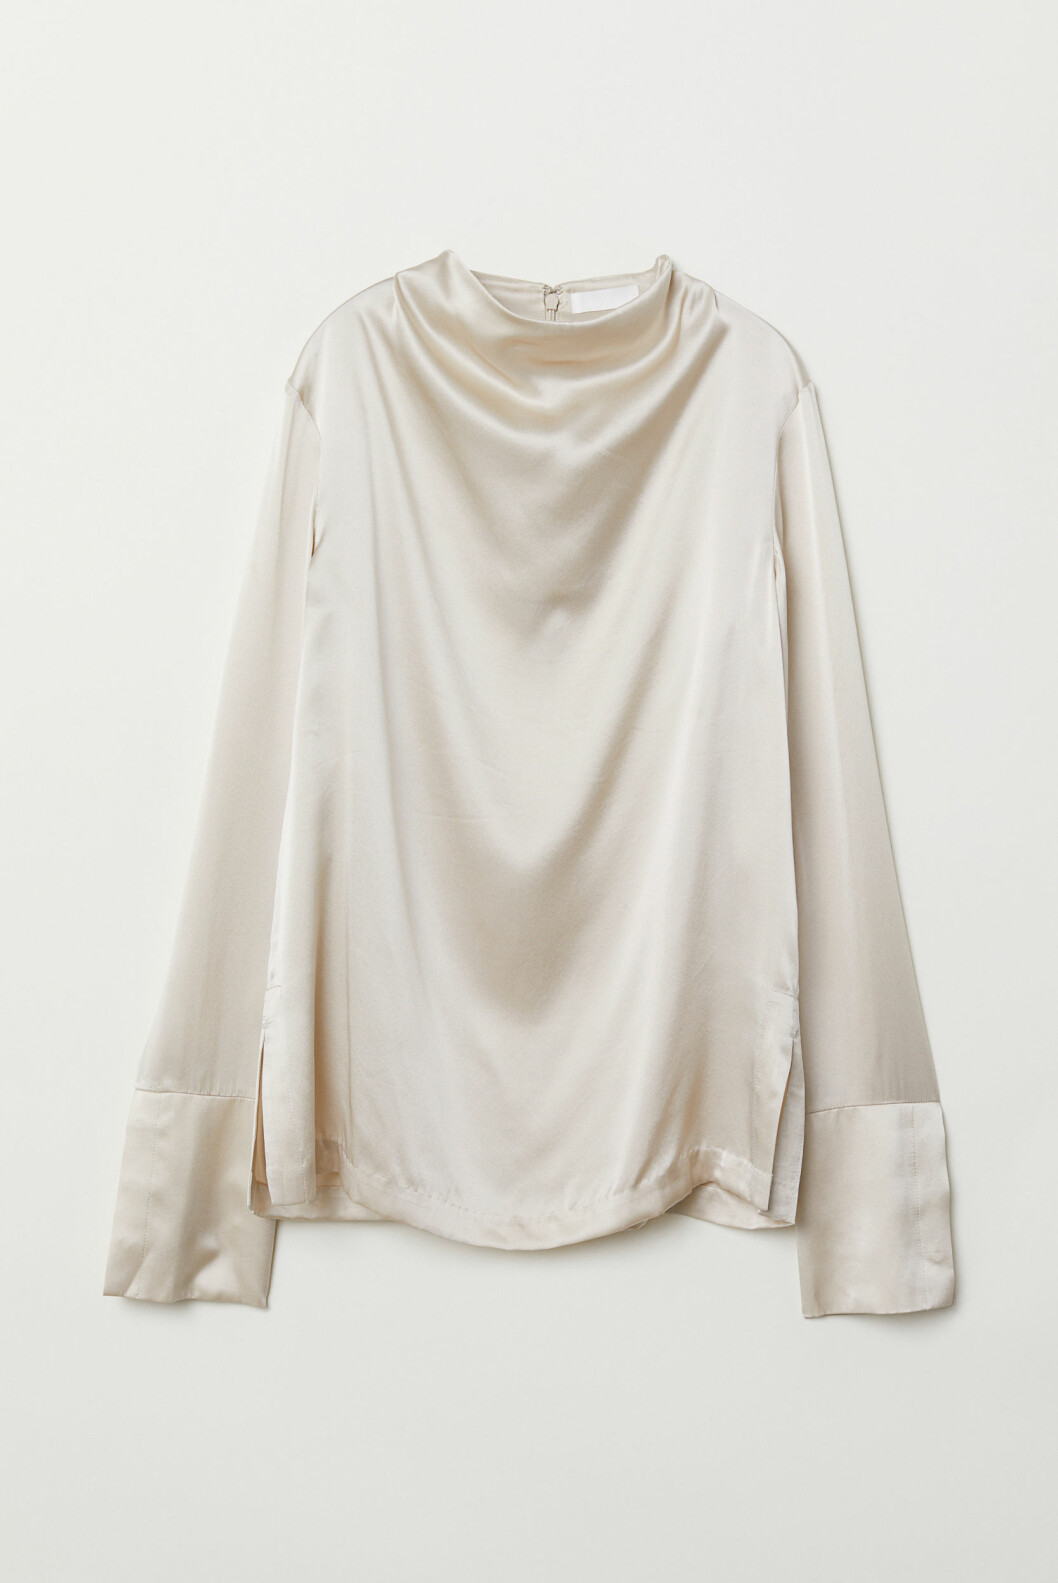 <strong>Silketopp fra H&M |1000,-| https:</strong>//www2.hm.com/no_no/productpage.0699266001.html